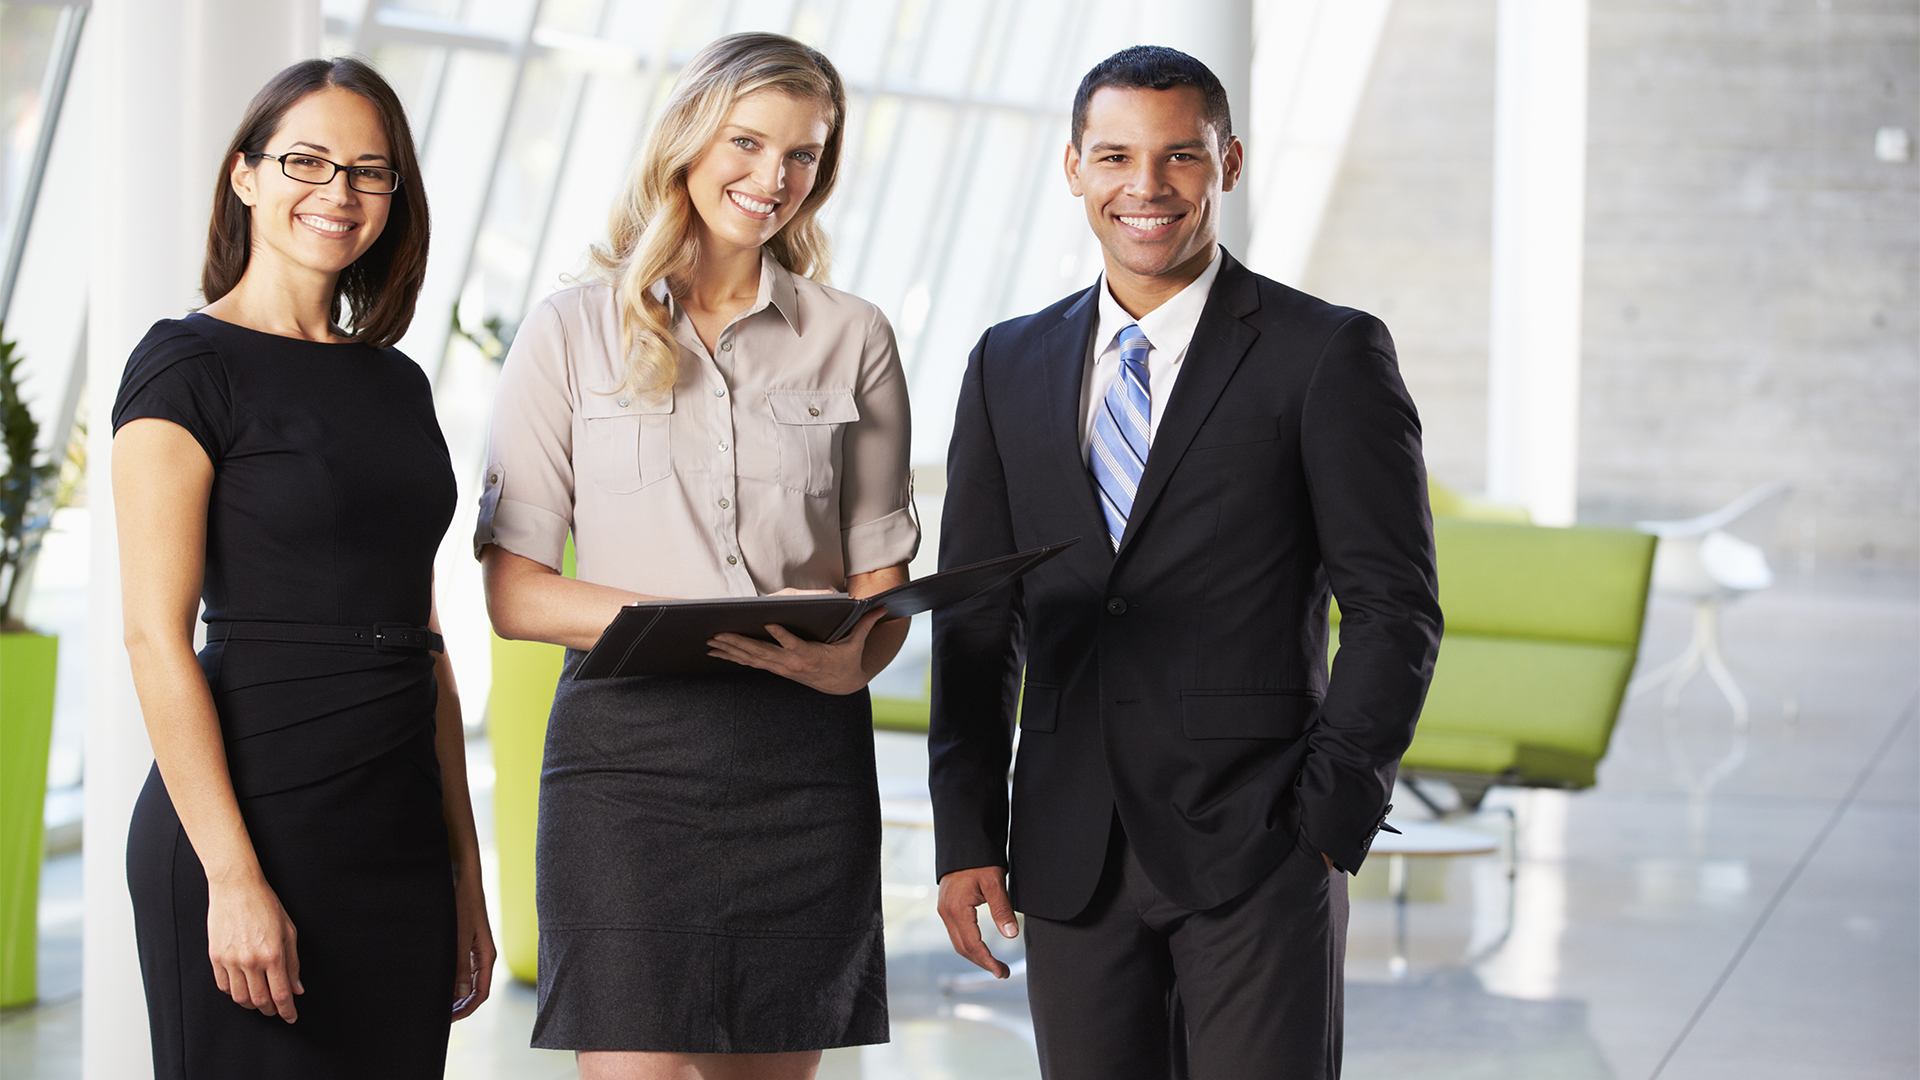 Three students in business attire preparing for a meeting